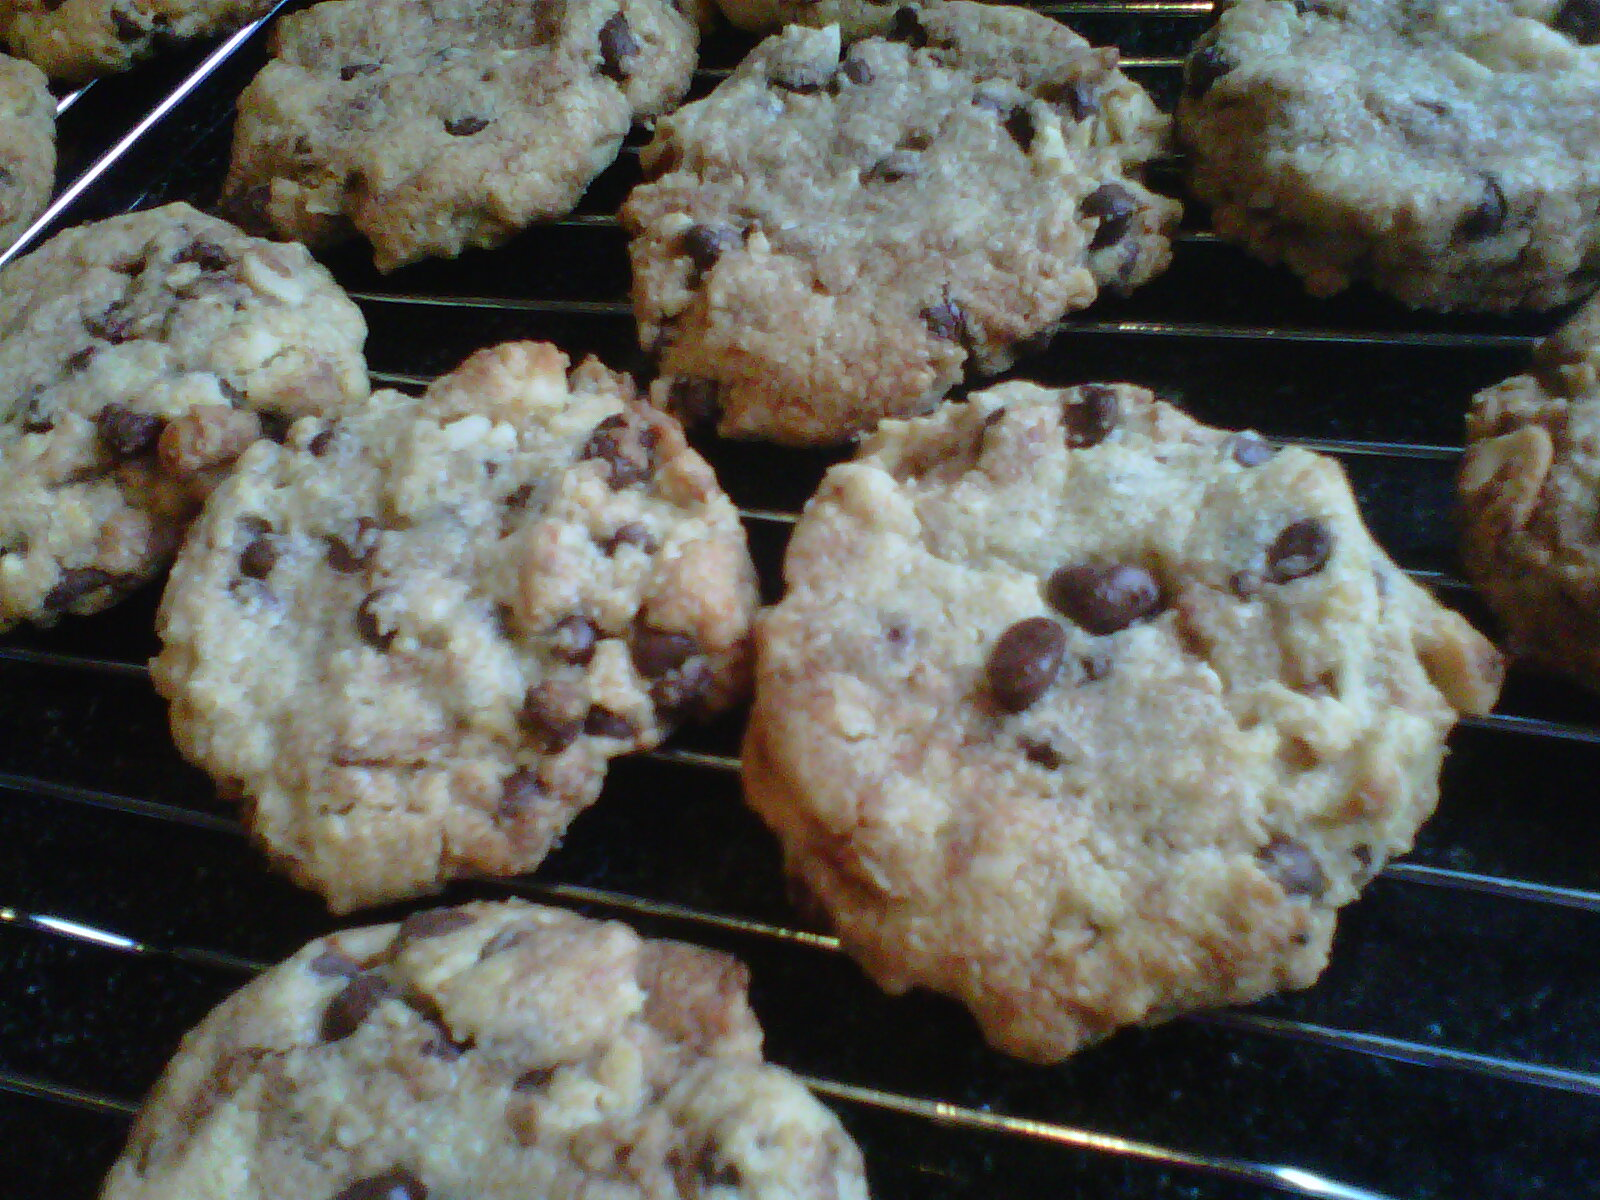 White Chocolate And Macadamia Cookies With Condensed Milk